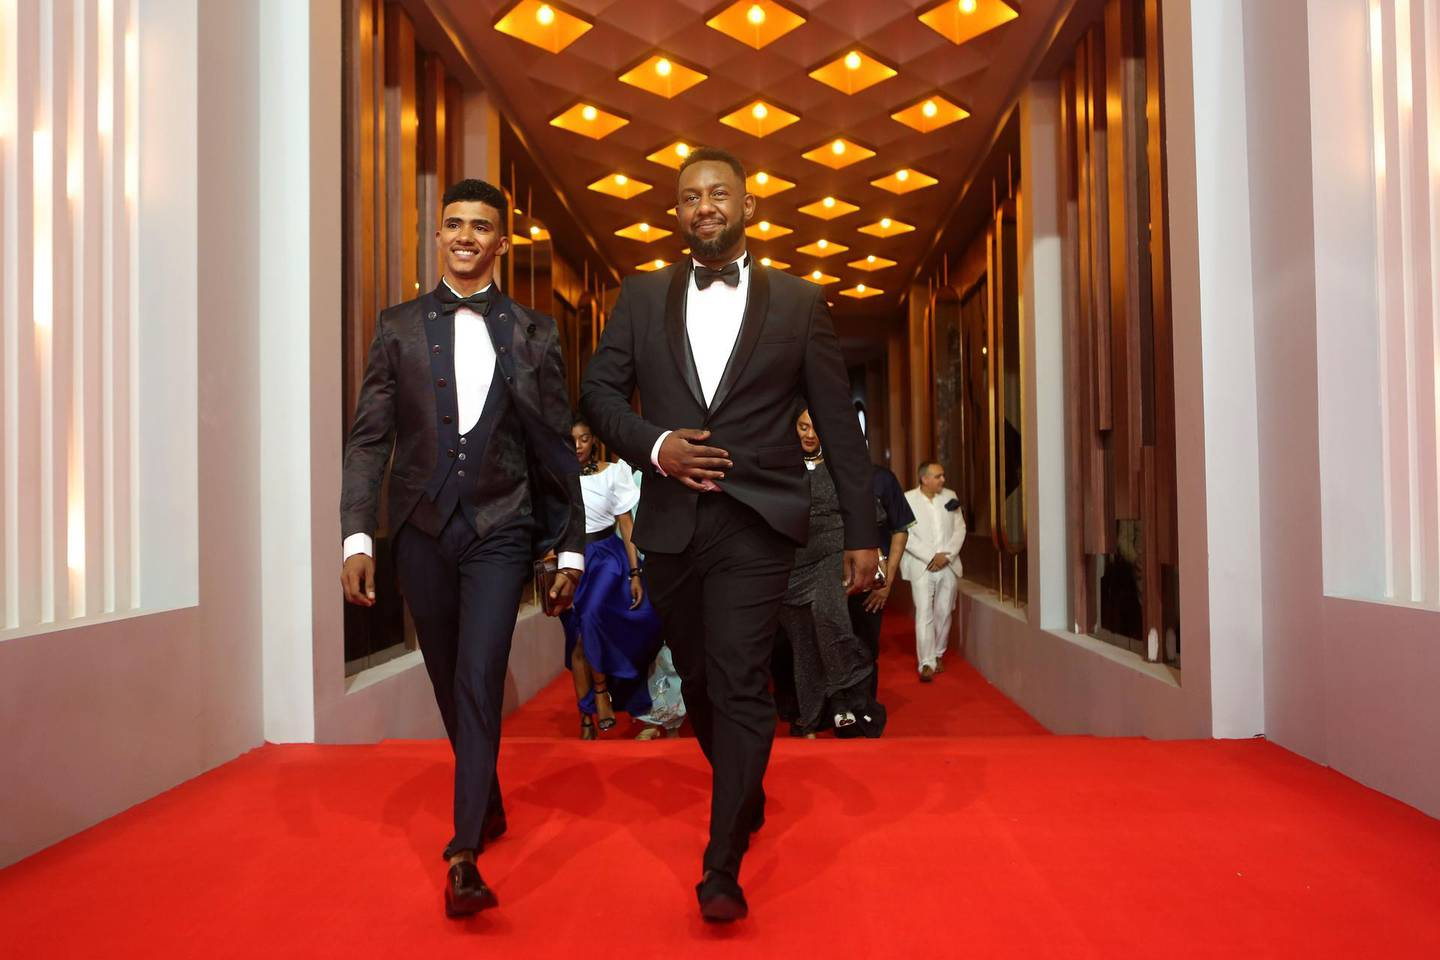 """CORRECTION / Sudanese director Amjad Abu Alaa (R) and actor Hassan Ali walk on the red carpet as they attend the premiere of the movie """"You Will Die at Twenty"""" during the 3rd edition of the Elgouna Film Festival at the Egyptian Red Sea resort of Elgouna on September 20, 2019.  RESTRICTED TO EDITORIAL USE   / AFP / ELGOUNA FILM FESTIVAL / Patrick BAZ / RESTRICTED TO EDITORIAL USE"""